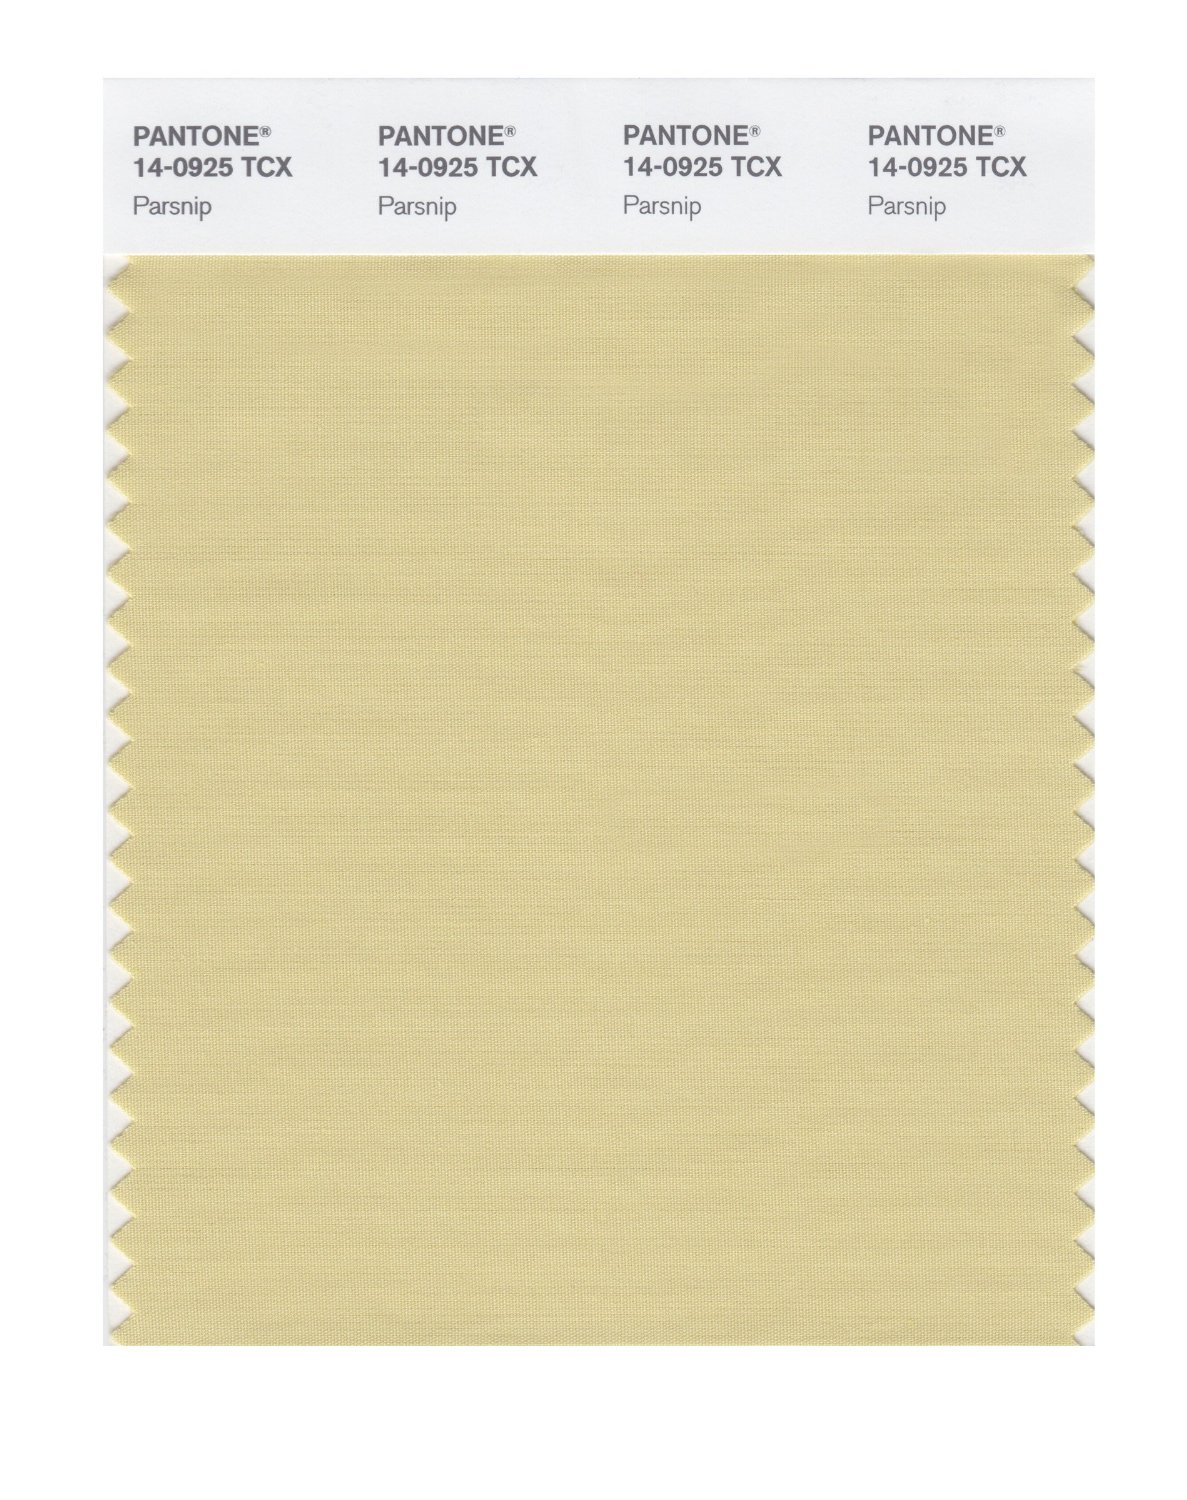 Pantone Smart Swatch 14-0925 Parsnip